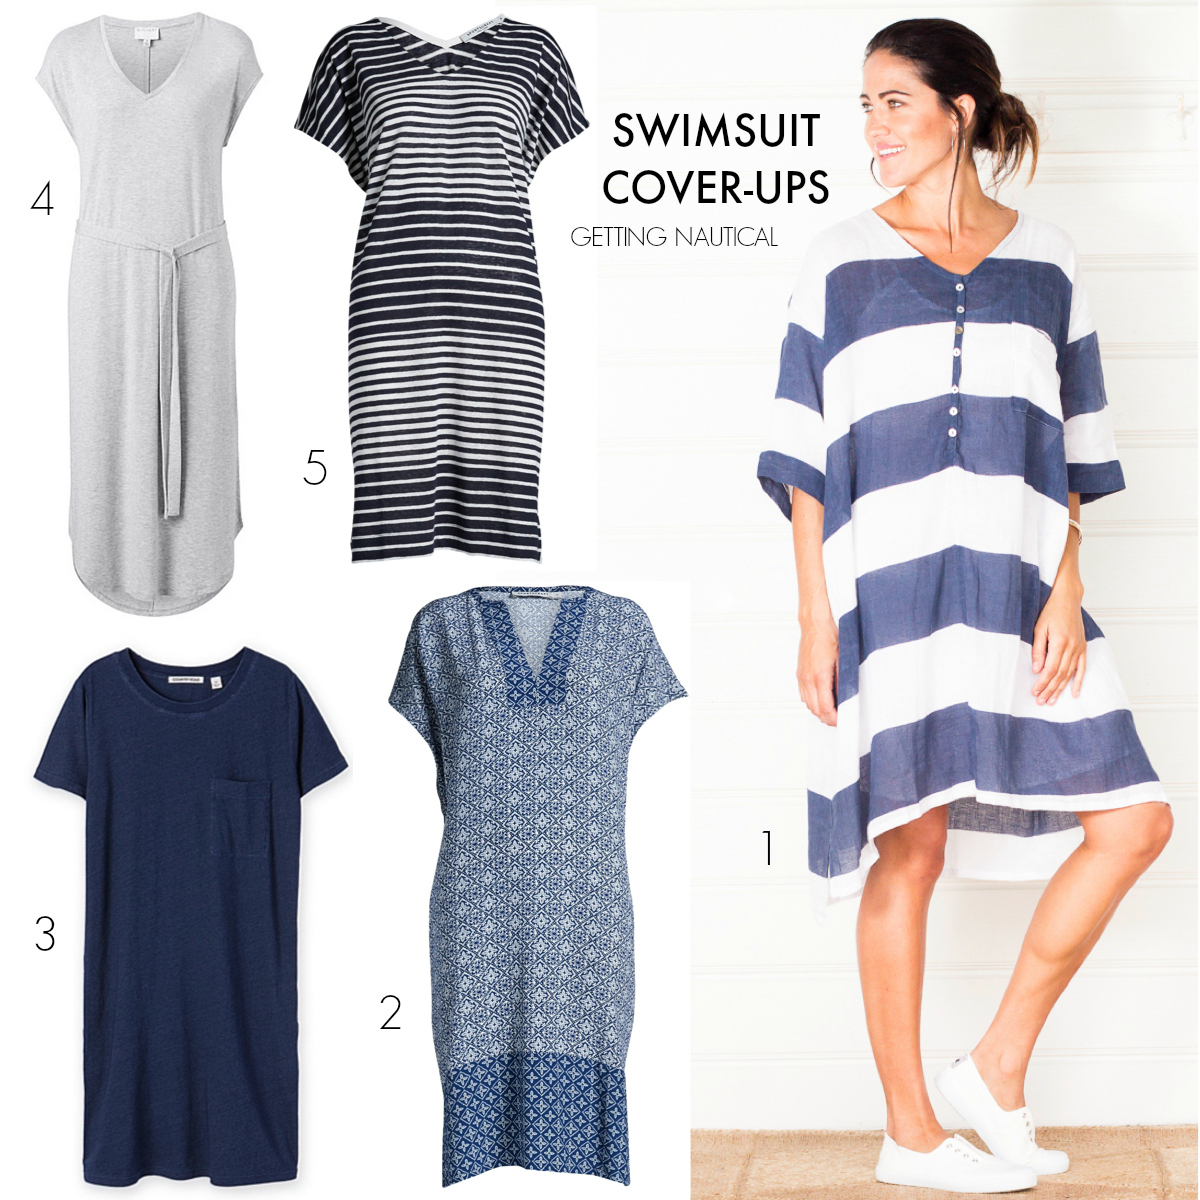 7 tips for choosing a swimsuit cover-up that works for your everyday style | GETTING NAUTICAL